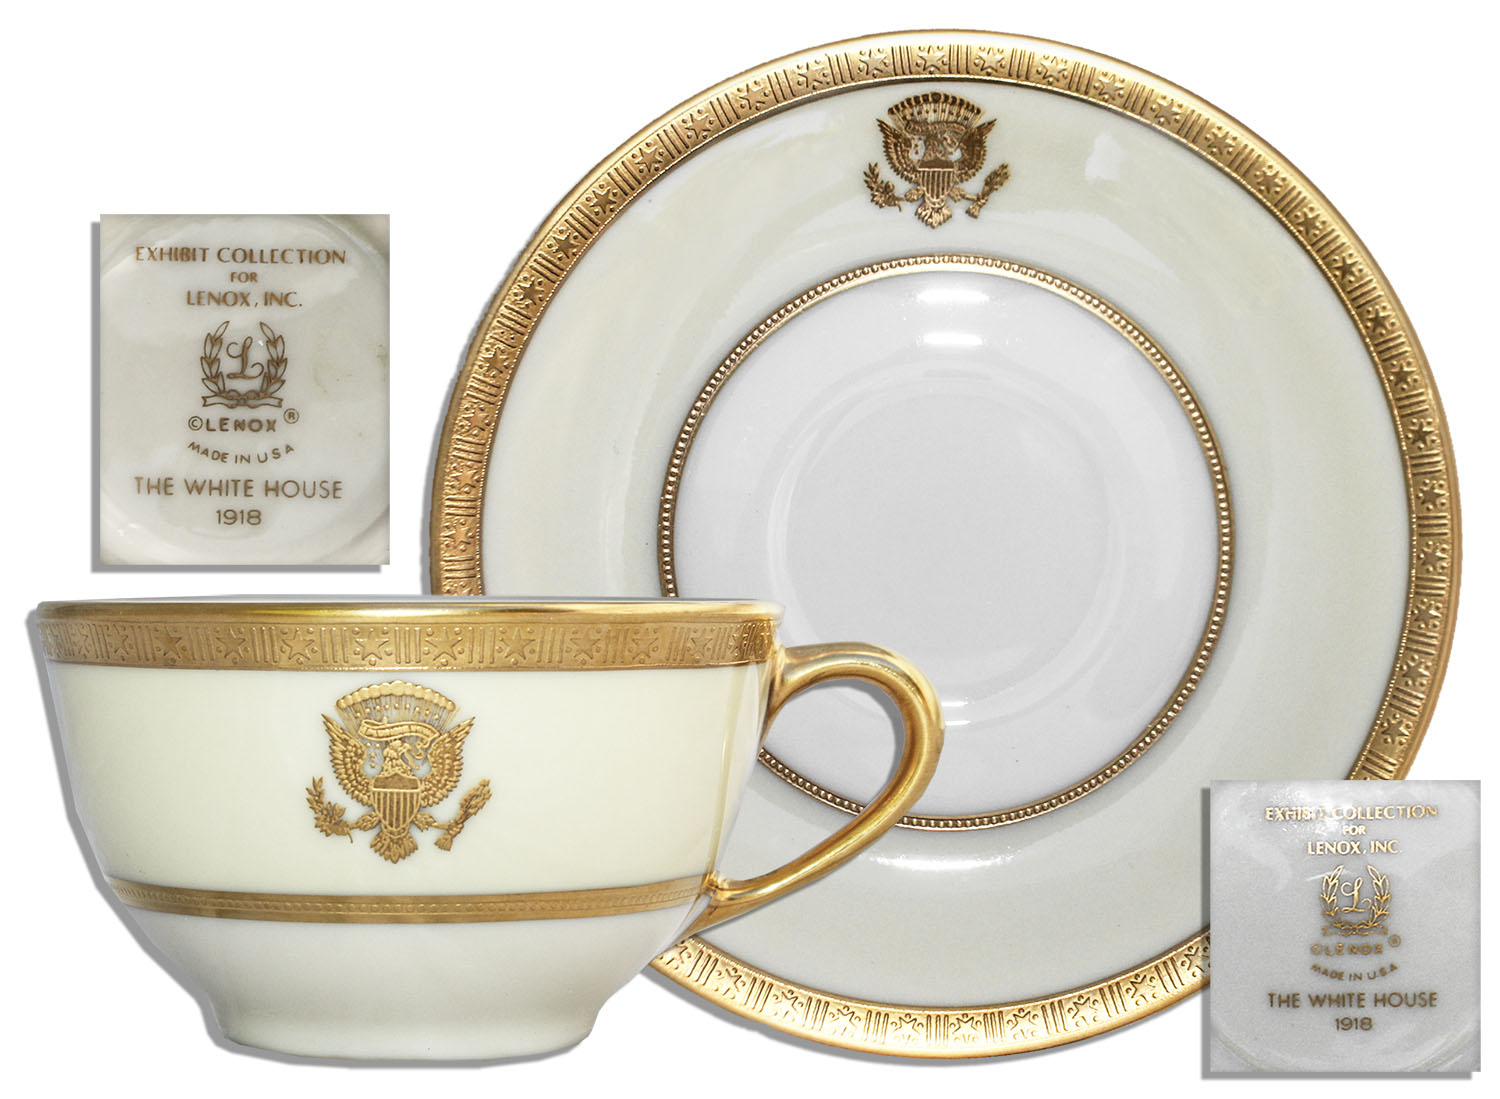 A sampling of Woodrow Wilson's White House china